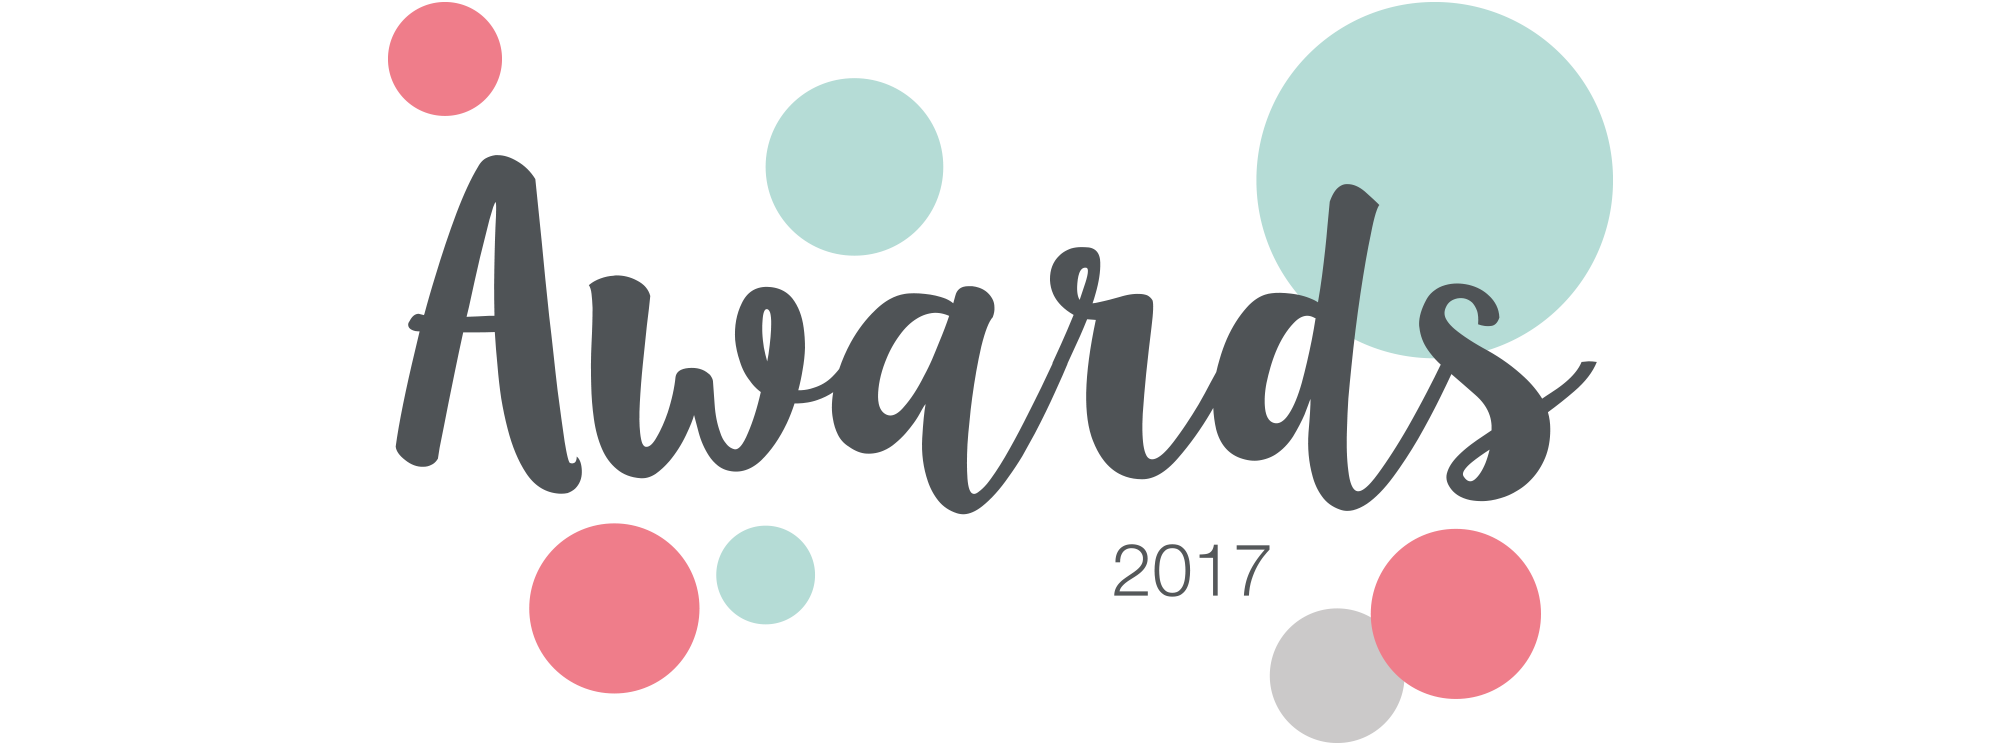 Sizzix Awards - 31. marca 2017